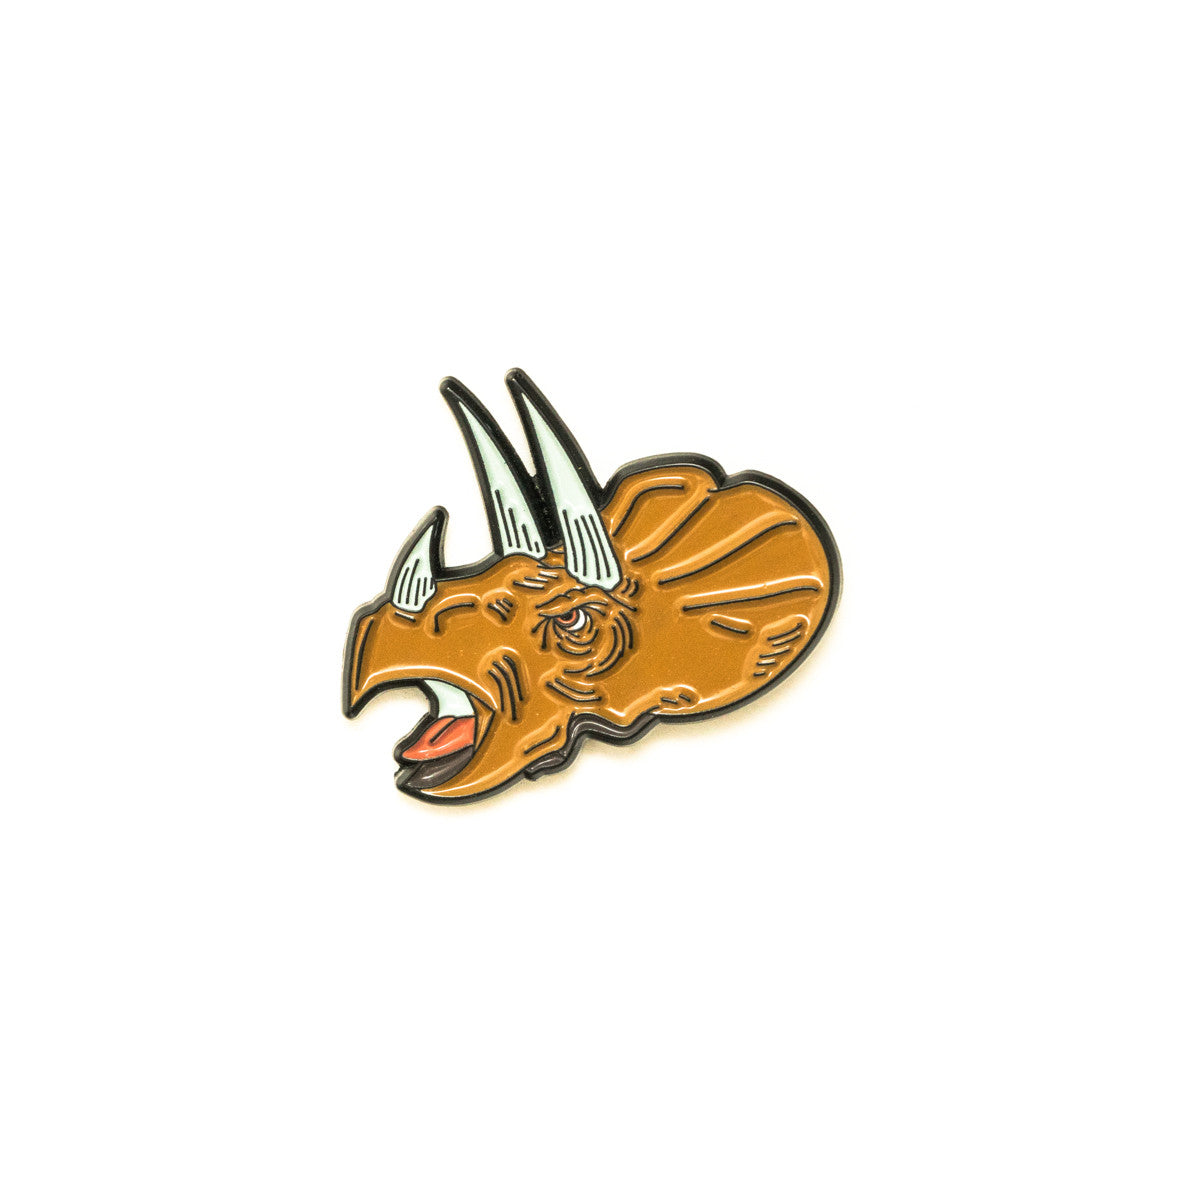 Triceratops Pin - Warrior Pins